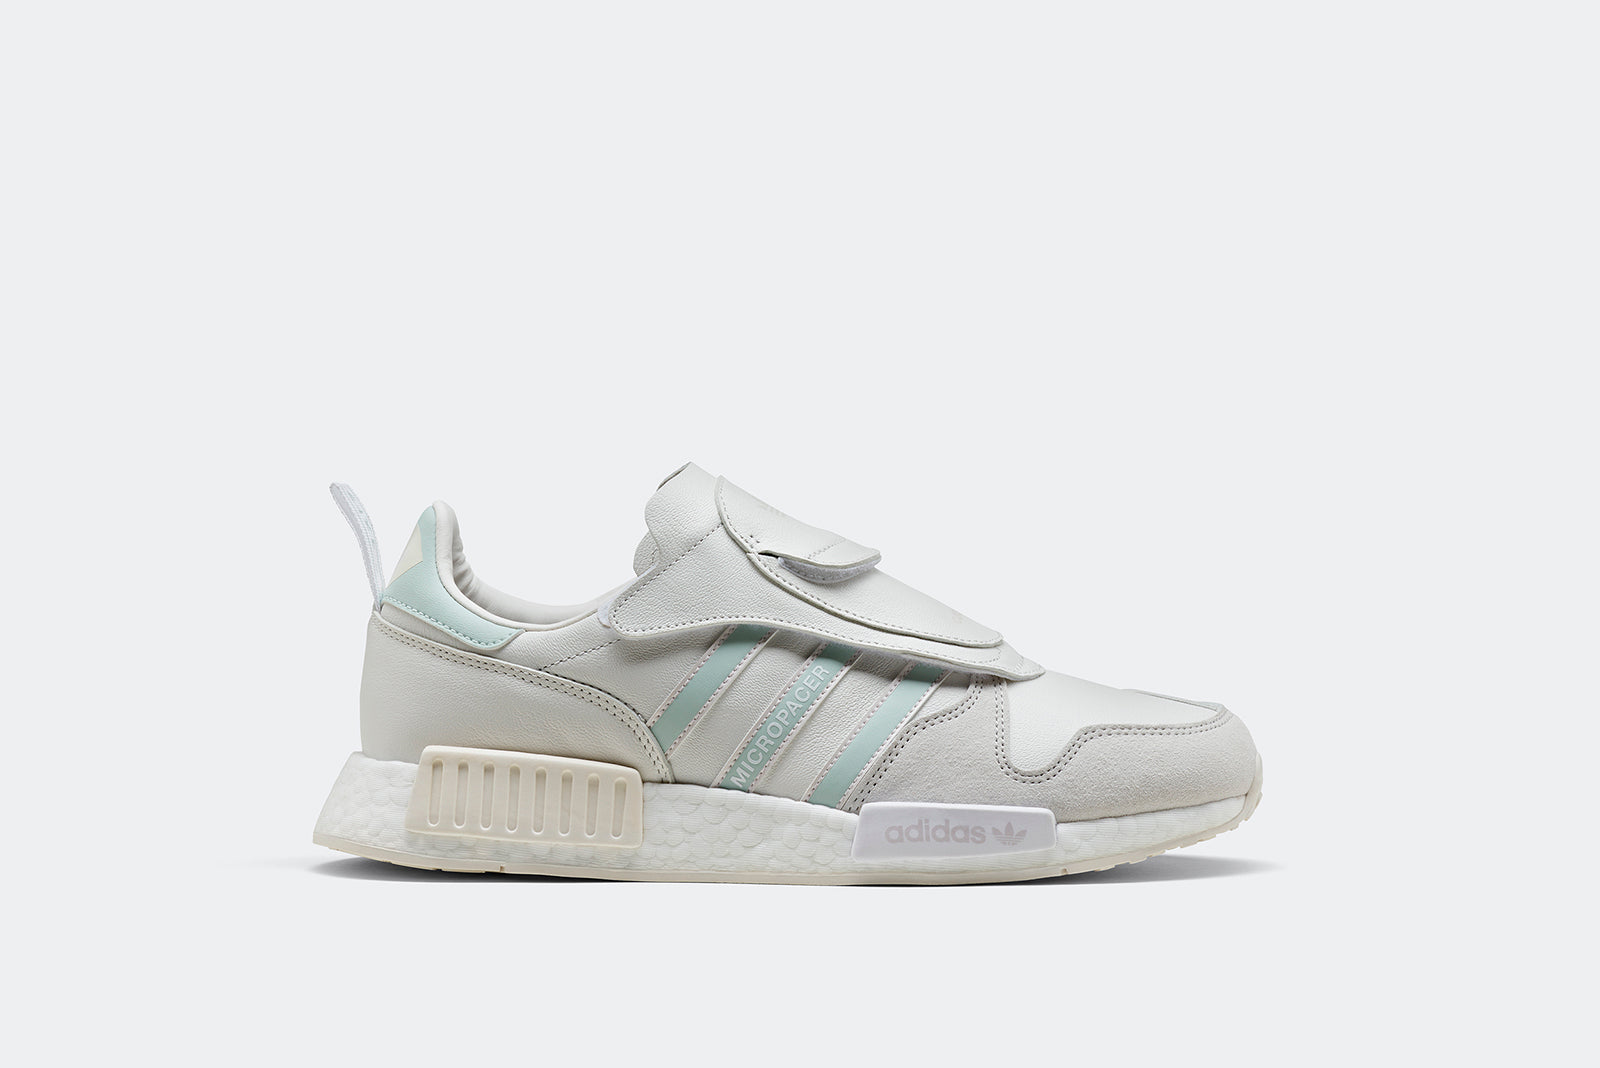 2d7e8e43677 adidas Originals Micropacer x R1  Never Made  G28390 CLOWHI FTWWHT GREONE  Price  £159.00. Launch  Sunday 18th of November ONLINE  23 00GMT